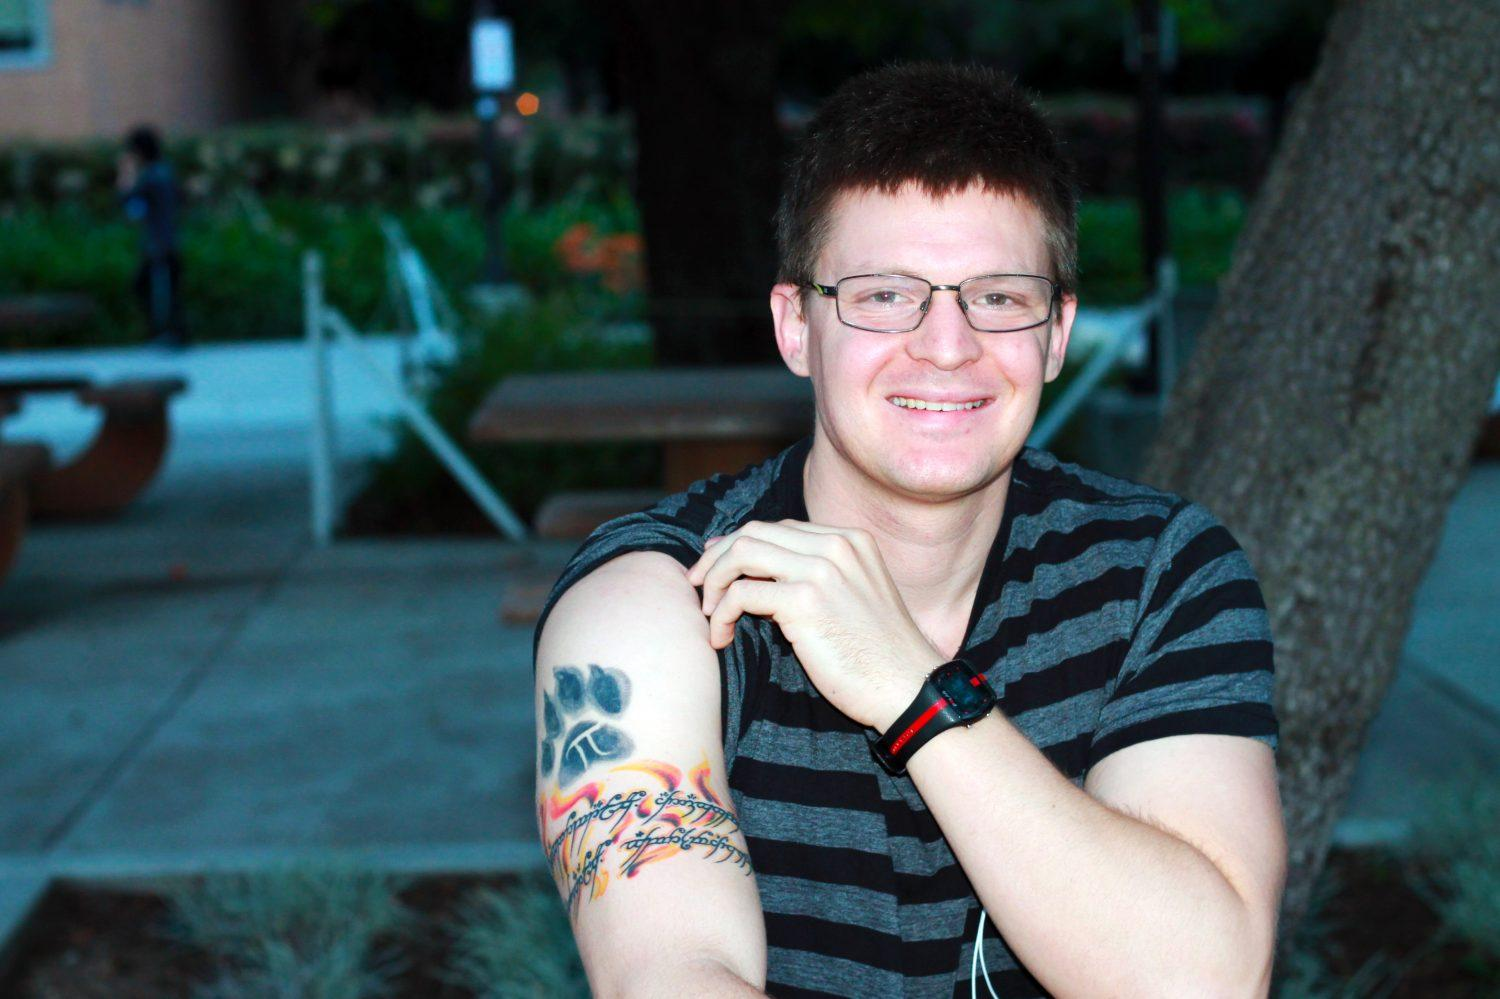 Phillip Charles Smith, 25, is a kinesiology major who found himself not only getting one tattoo, but two in one sitting. (Ashley Grant/ The Sundial) Photo credit: Ashley Grant